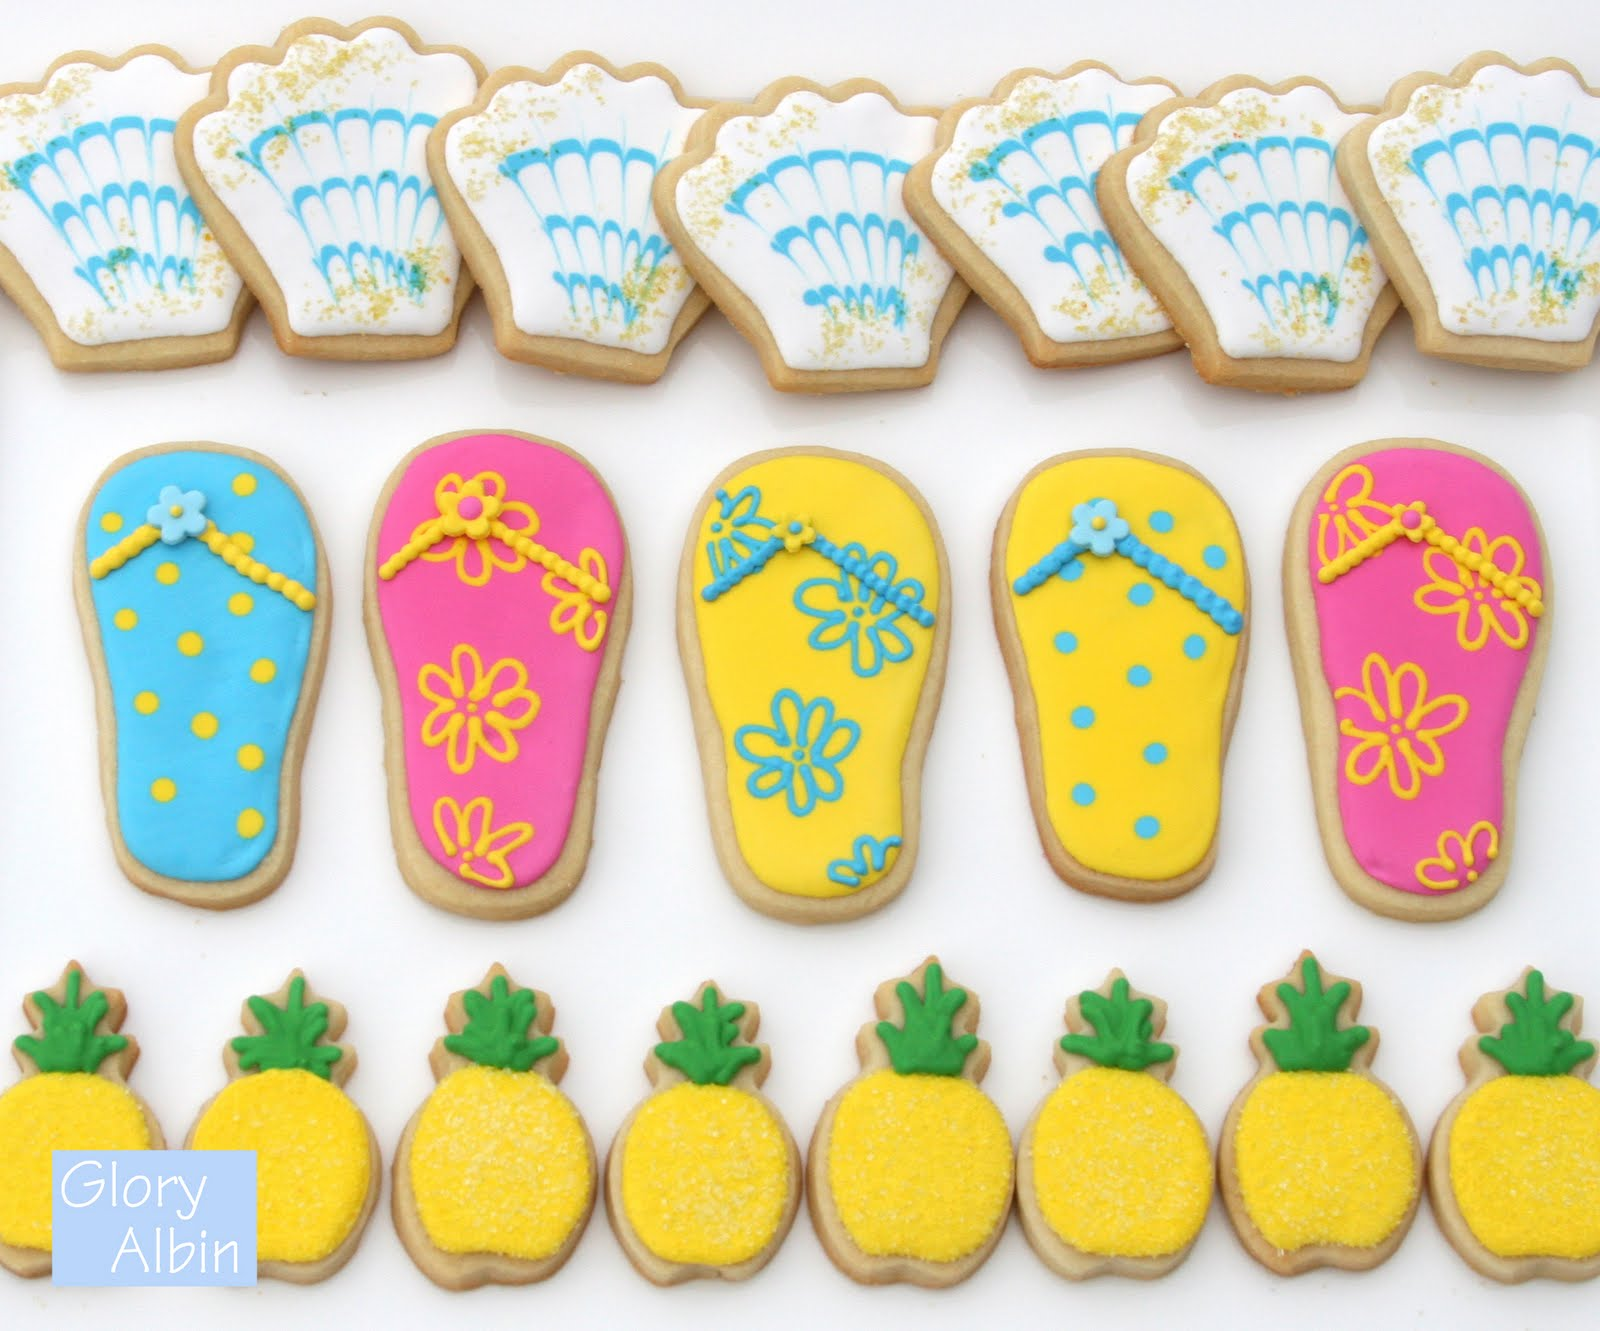 Biscuit clipart sugar cookie With – Decorating Treats Royal